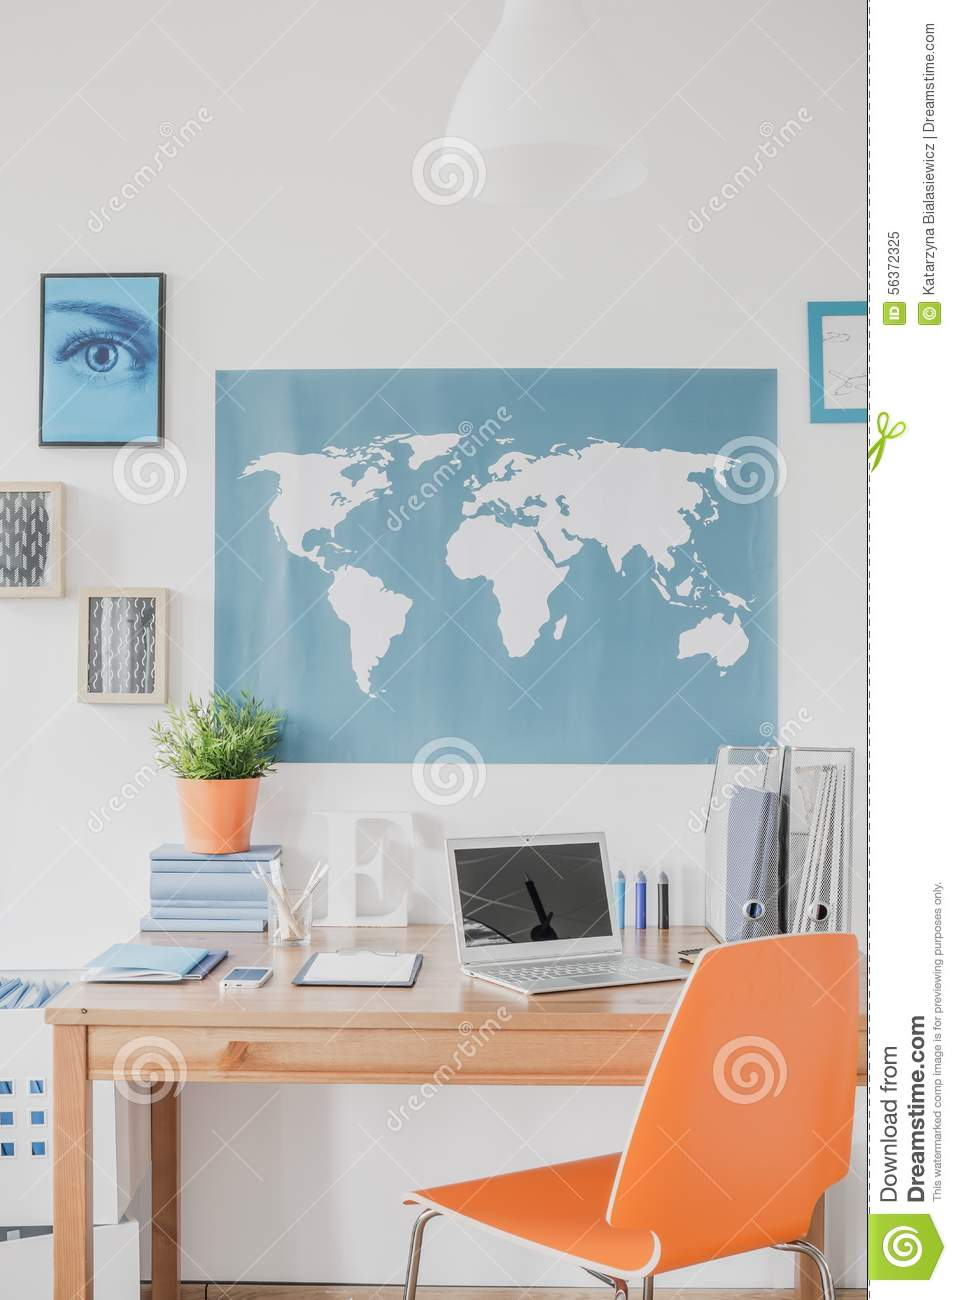 World map above the desk stock image image of equipment 56372325 world map above the desk gumiabroncs Gallery